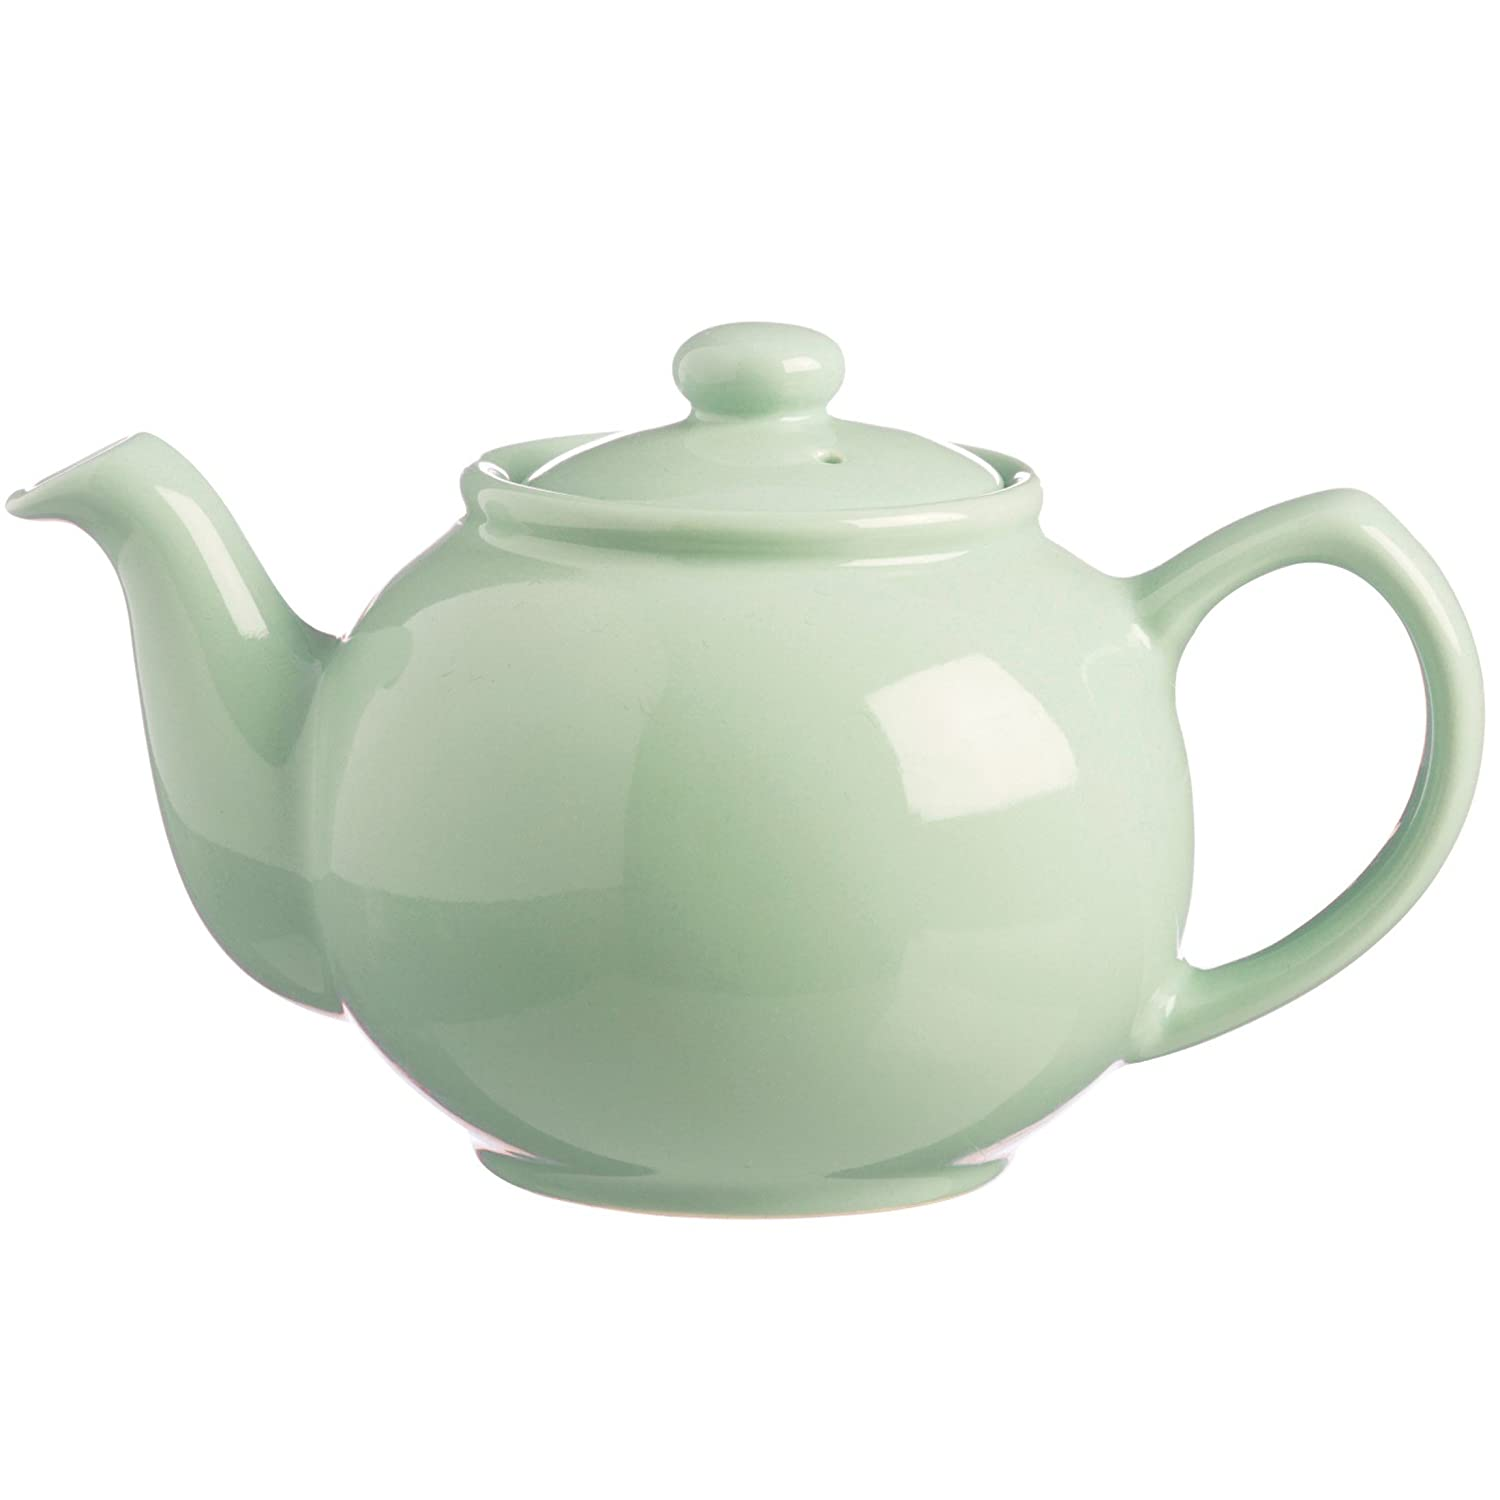 Price & Kensington Teapot, 15-Fluid Ounces, Mint